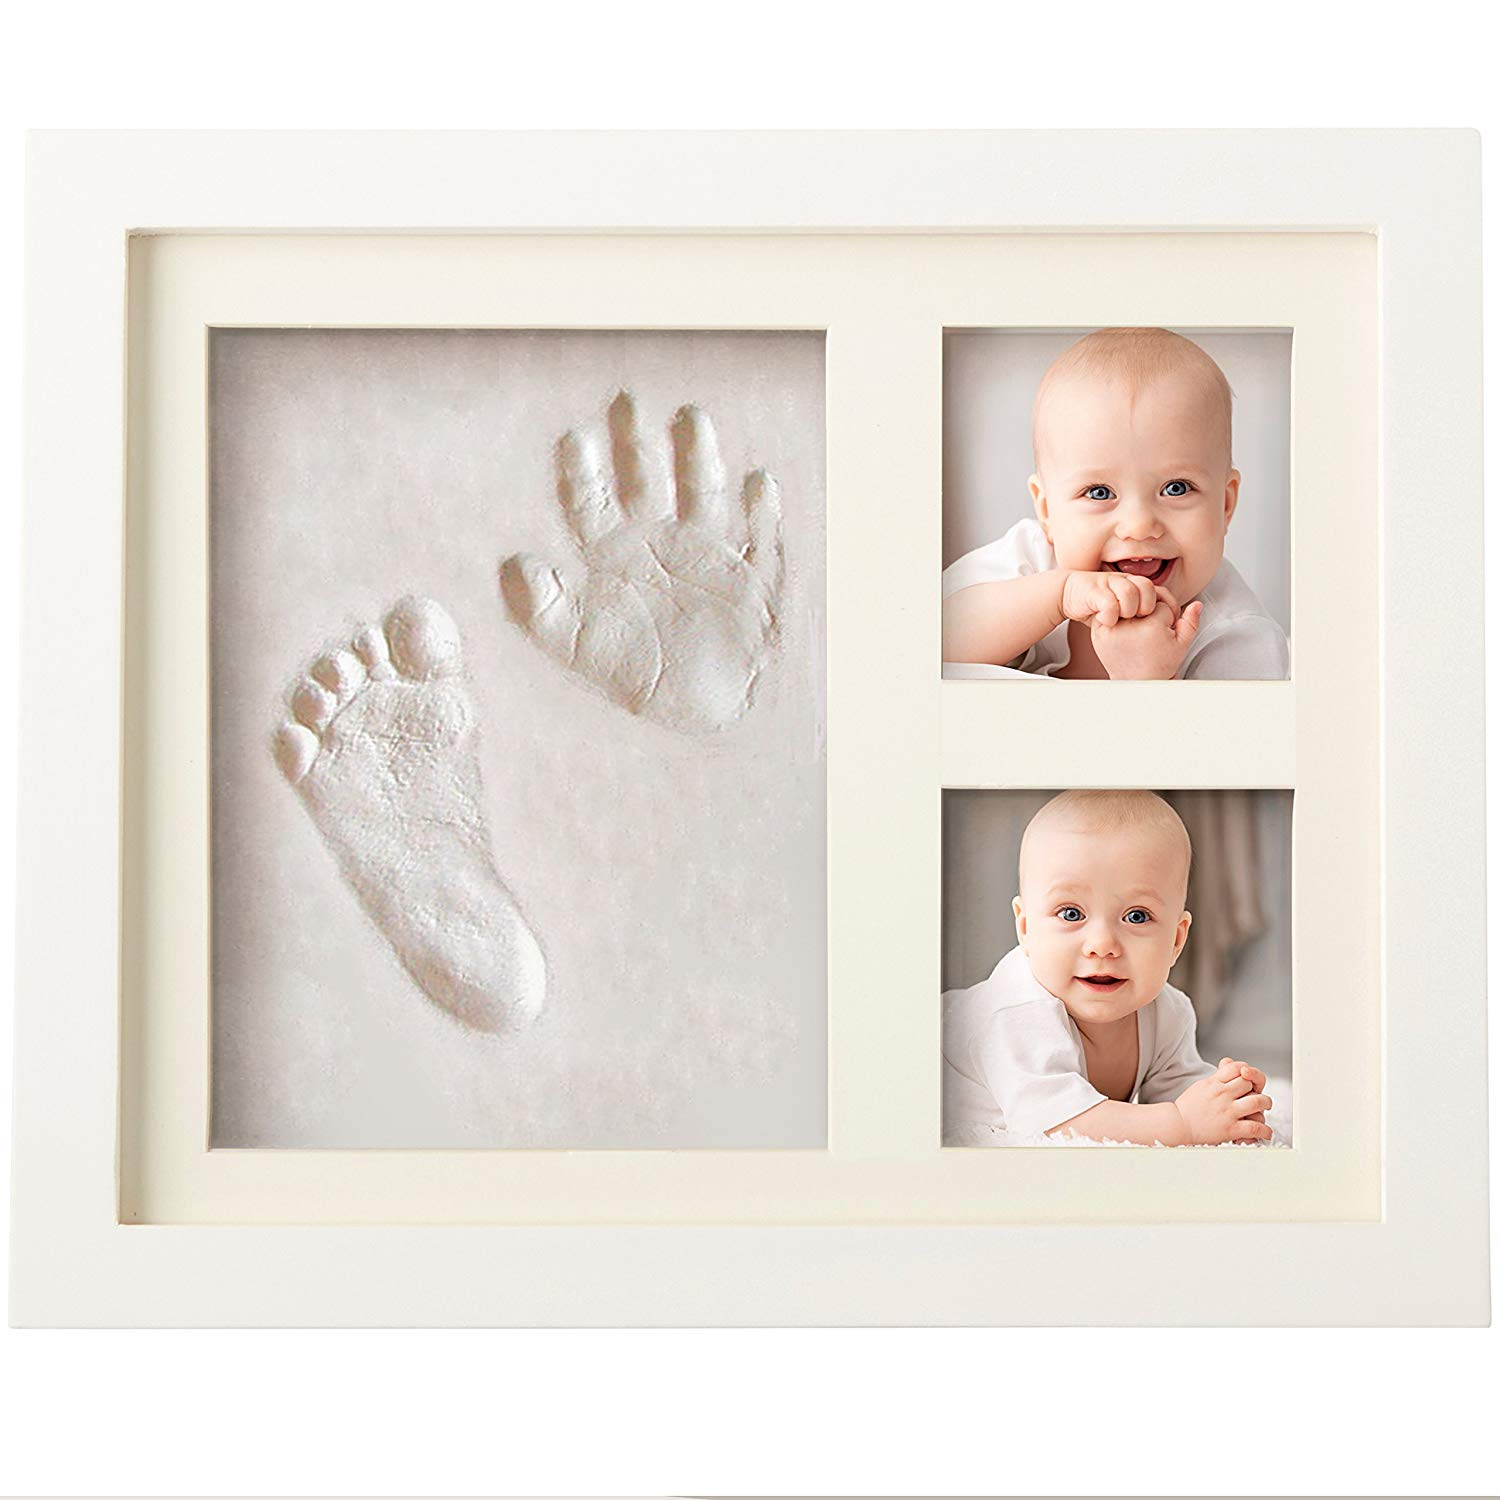 Baby Handprint Kit & Footprint Photo Frame for Newborn Girls and Boys